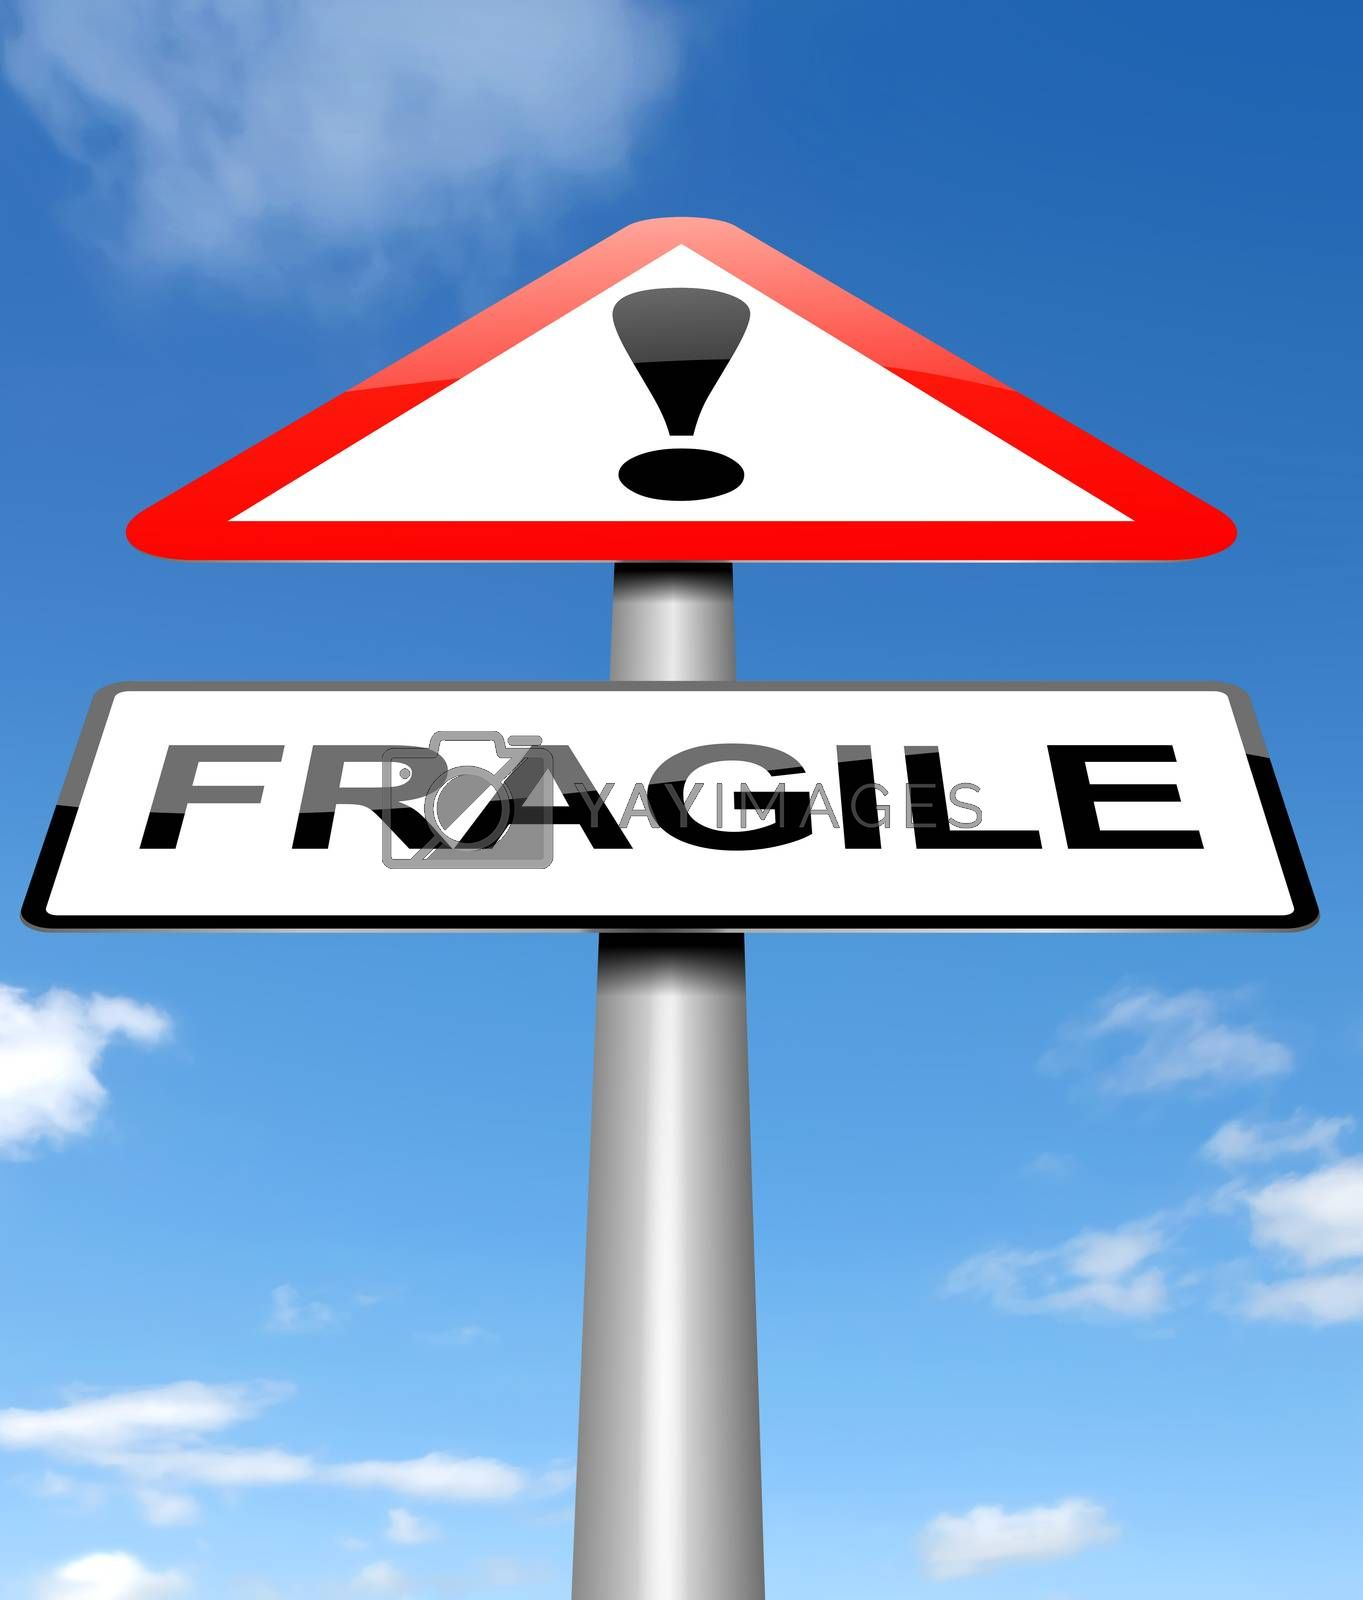 Illustration depicting a sign with a fragile concept.